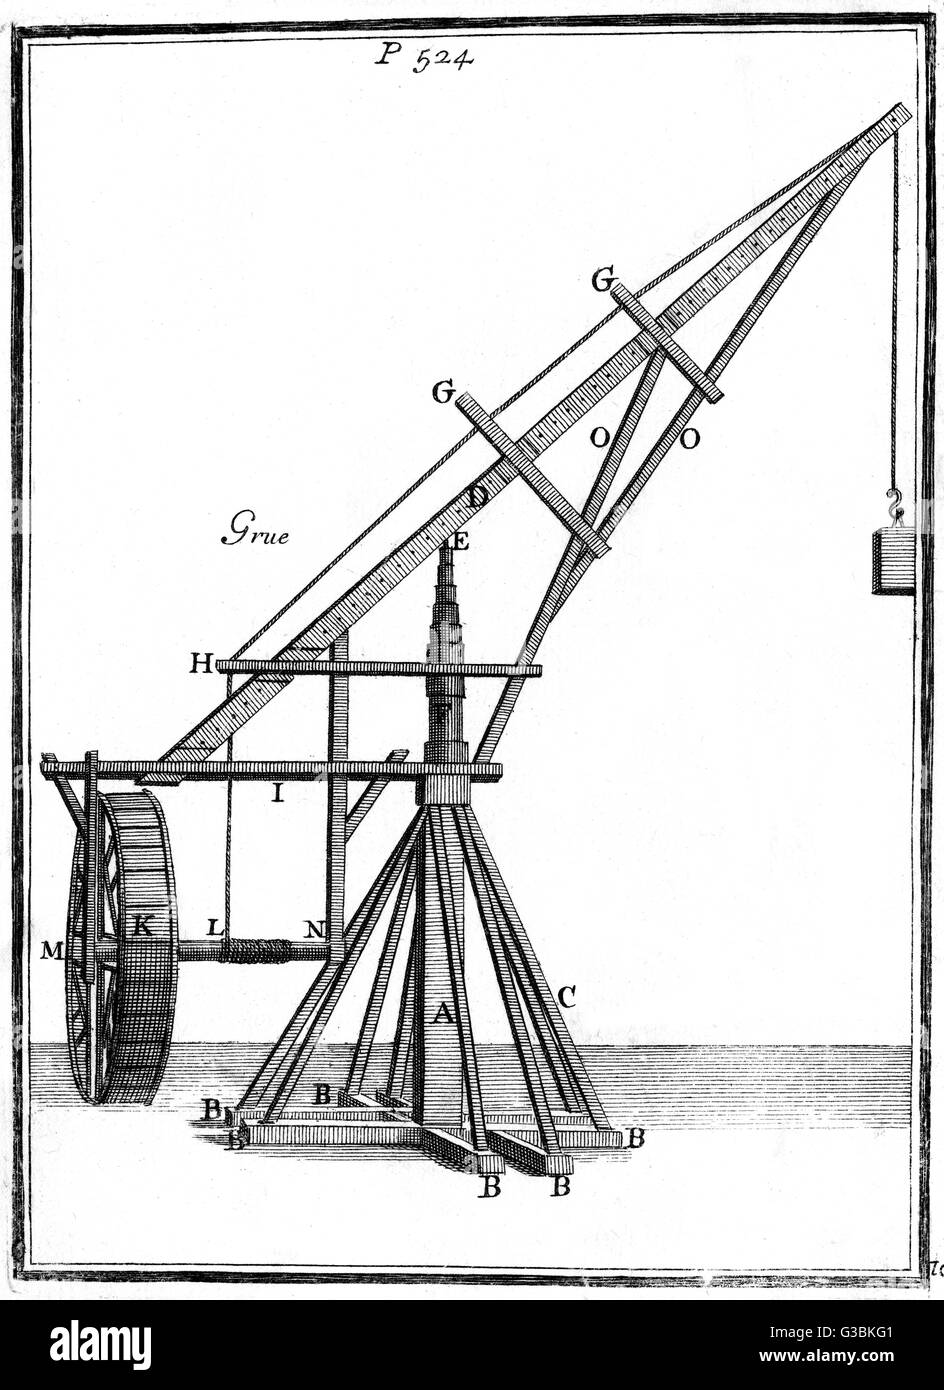 medium resolution of a 17th century crane timber construction the wheel enables it to be turned for instance when loading a vessel from a dock date 1690